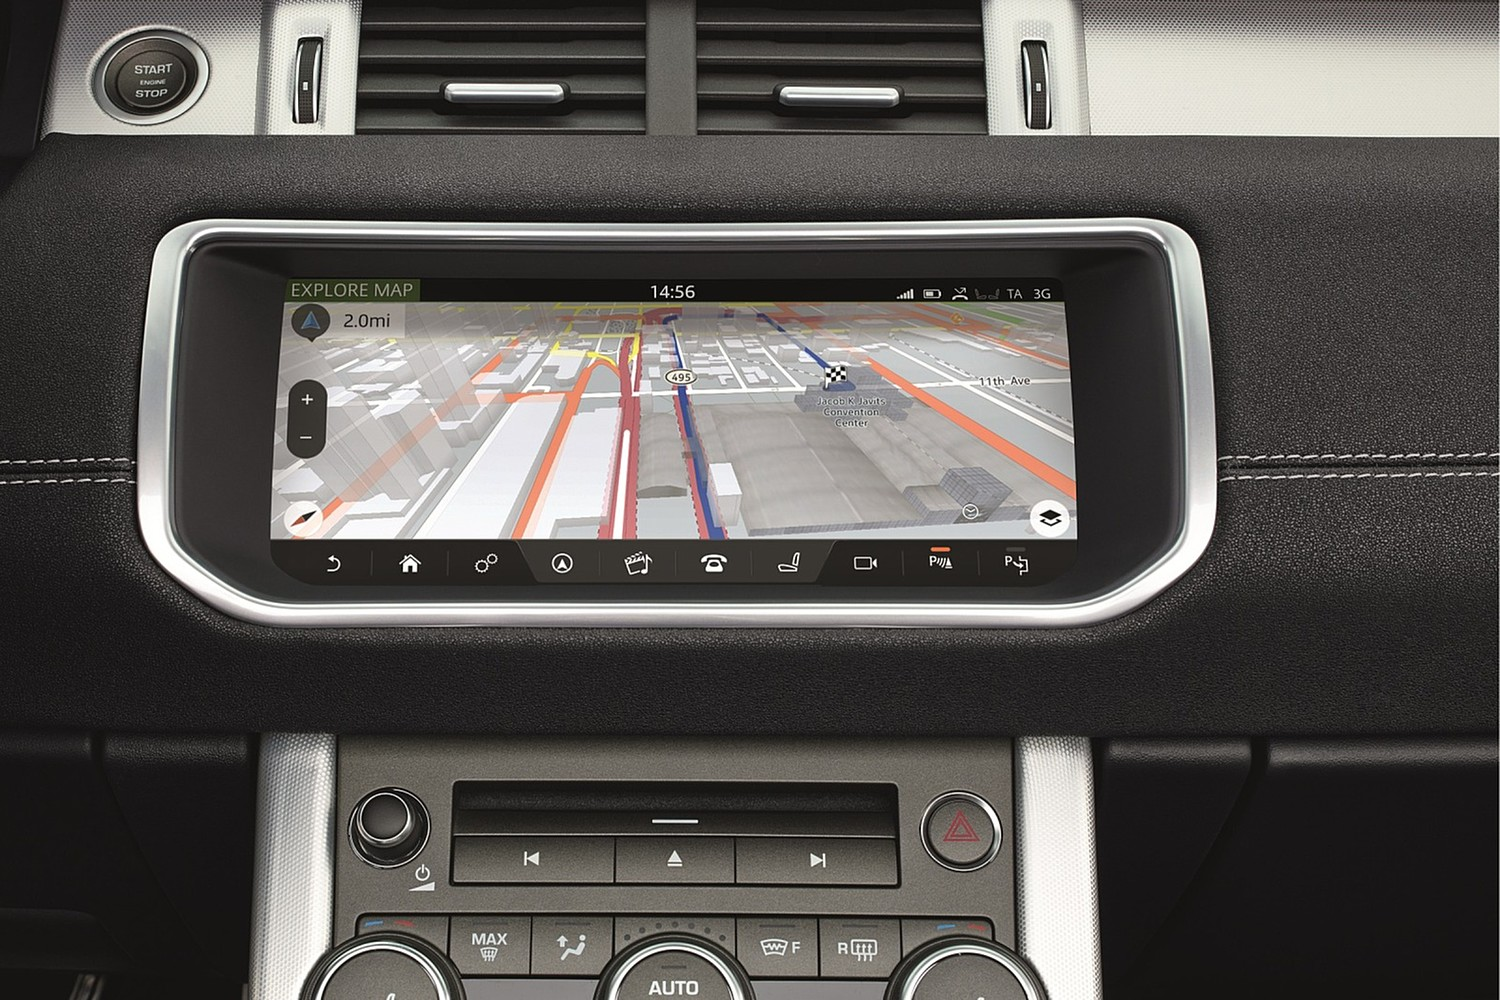 Land Rover Range Rover Evoque HSE Dynamic Convertible SUV Navigation System (2017 model year shown)